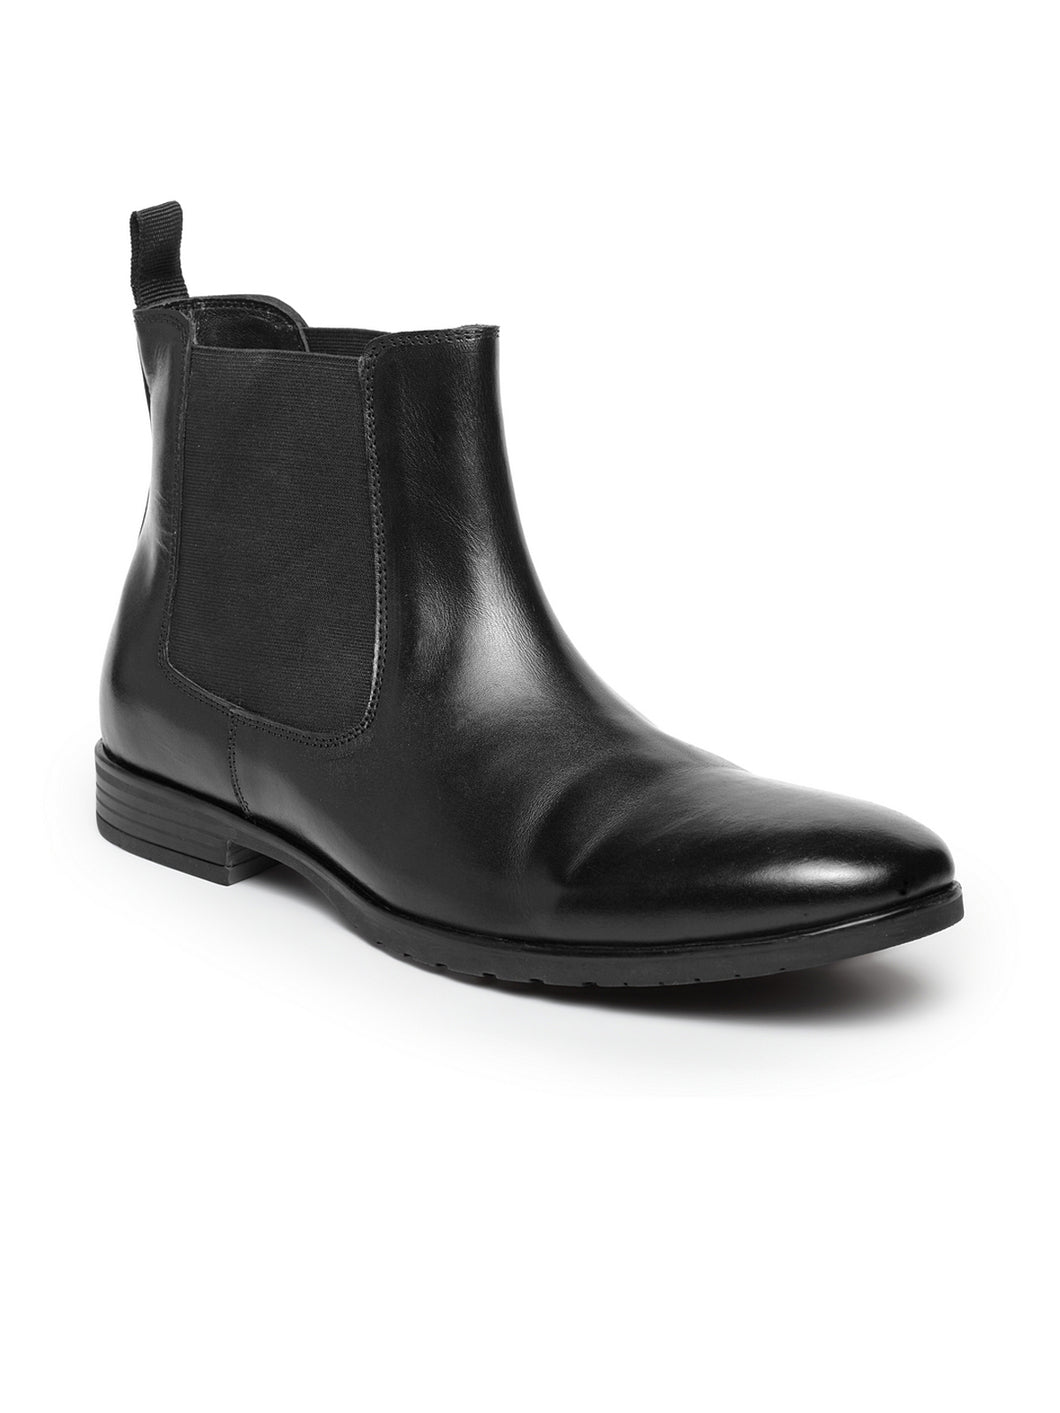 Teakwood Leathers Men's Black Chelsea Boots